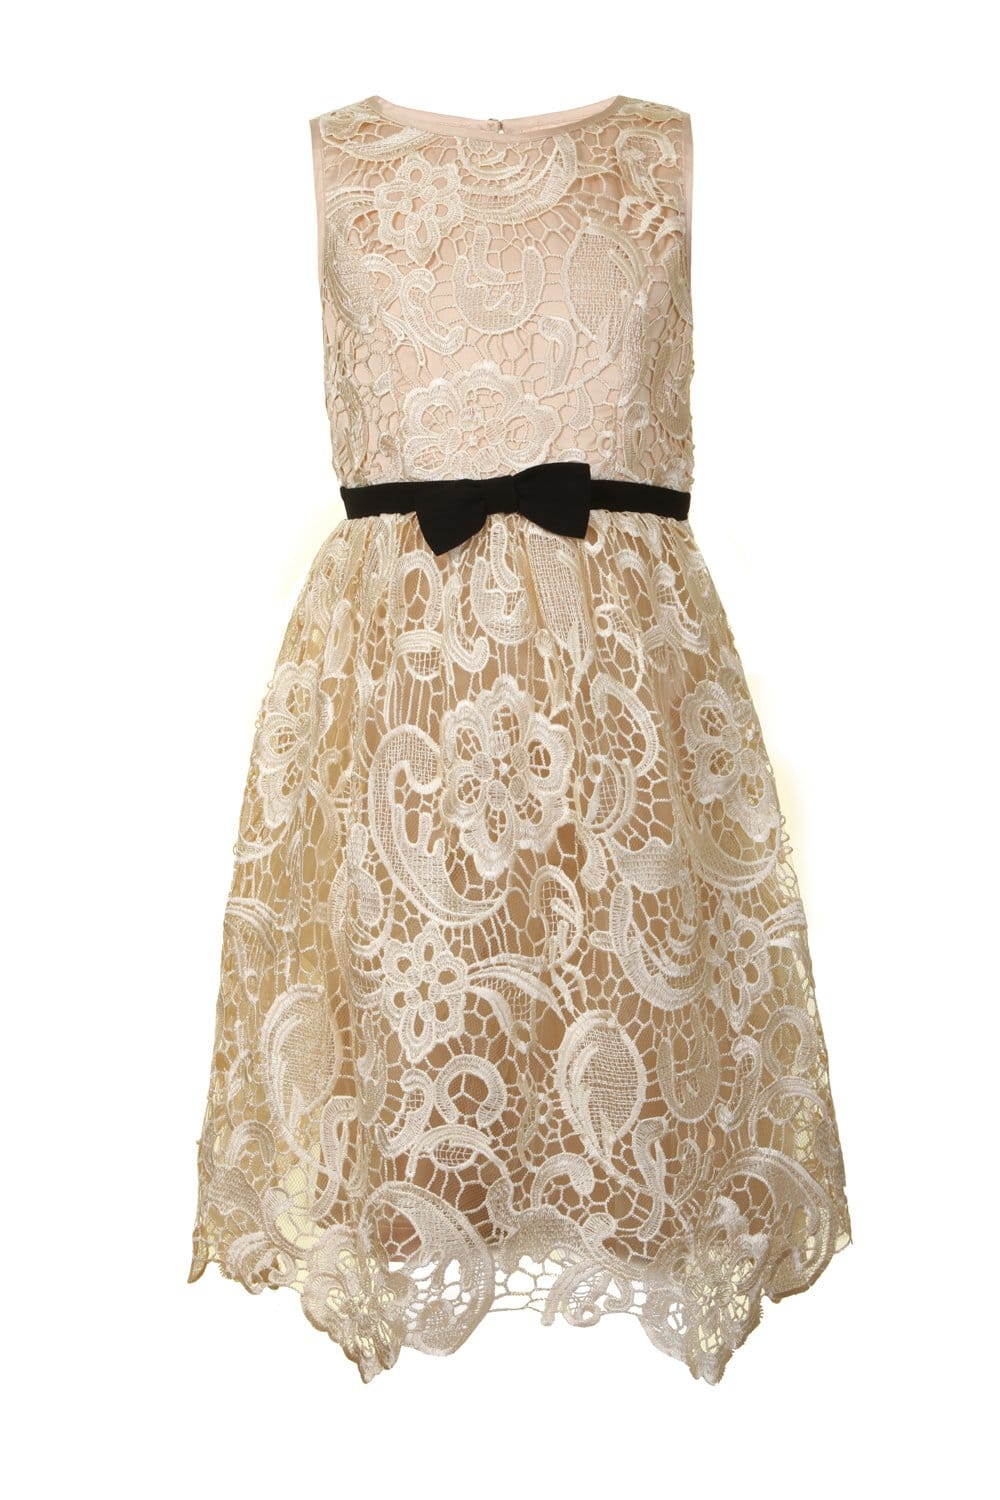 Little Misdress Cream Lace Bow Puffball Party Dress